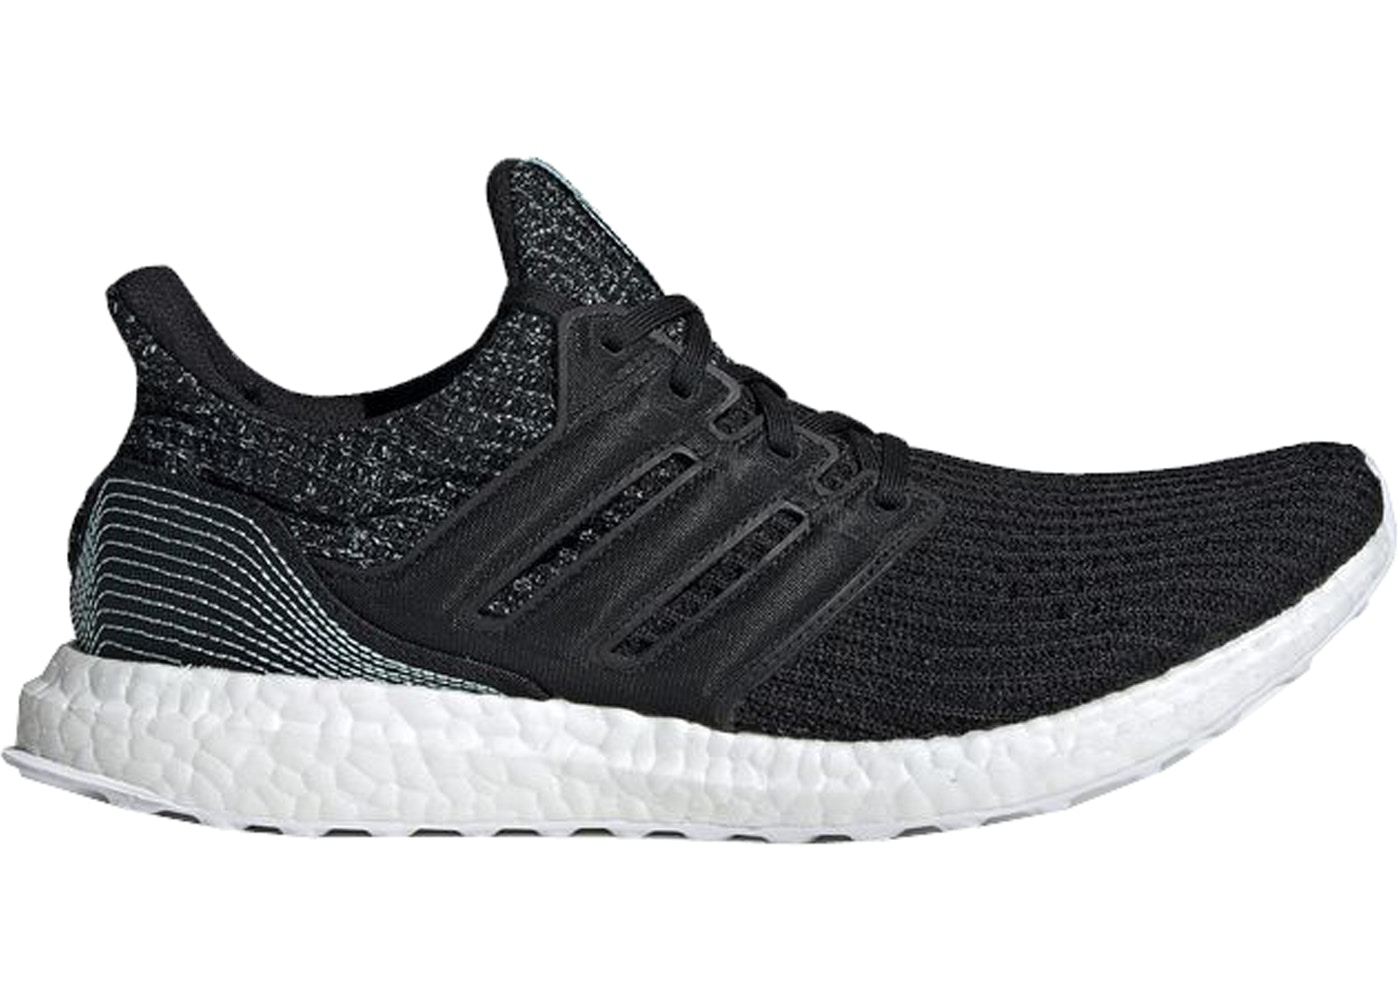 35bda7670432e Sell. or Ask. Size 6. View All Bids. adidas Ultra Boost 4.0 Parley Core  Black Cloud White